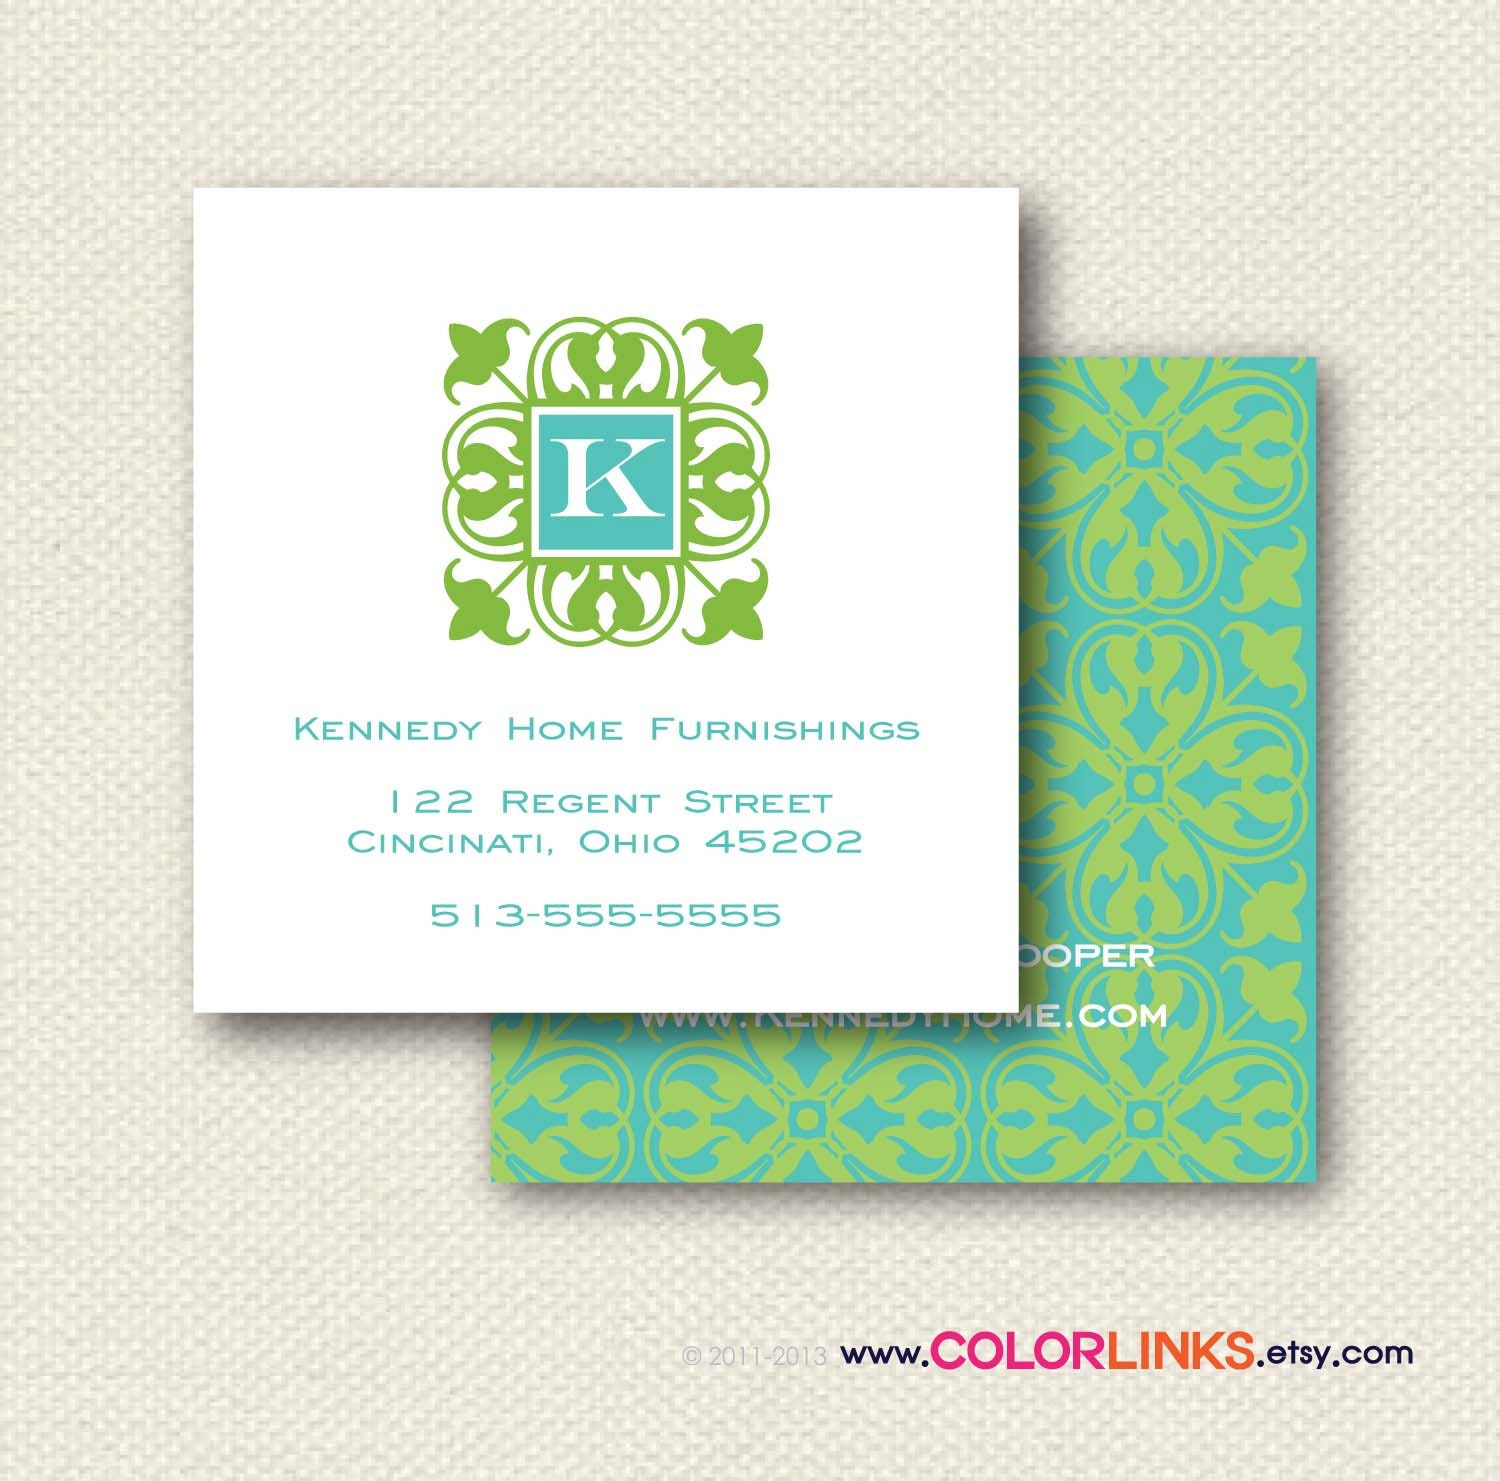 Items similar to Preppy Business Cards Calling Cards